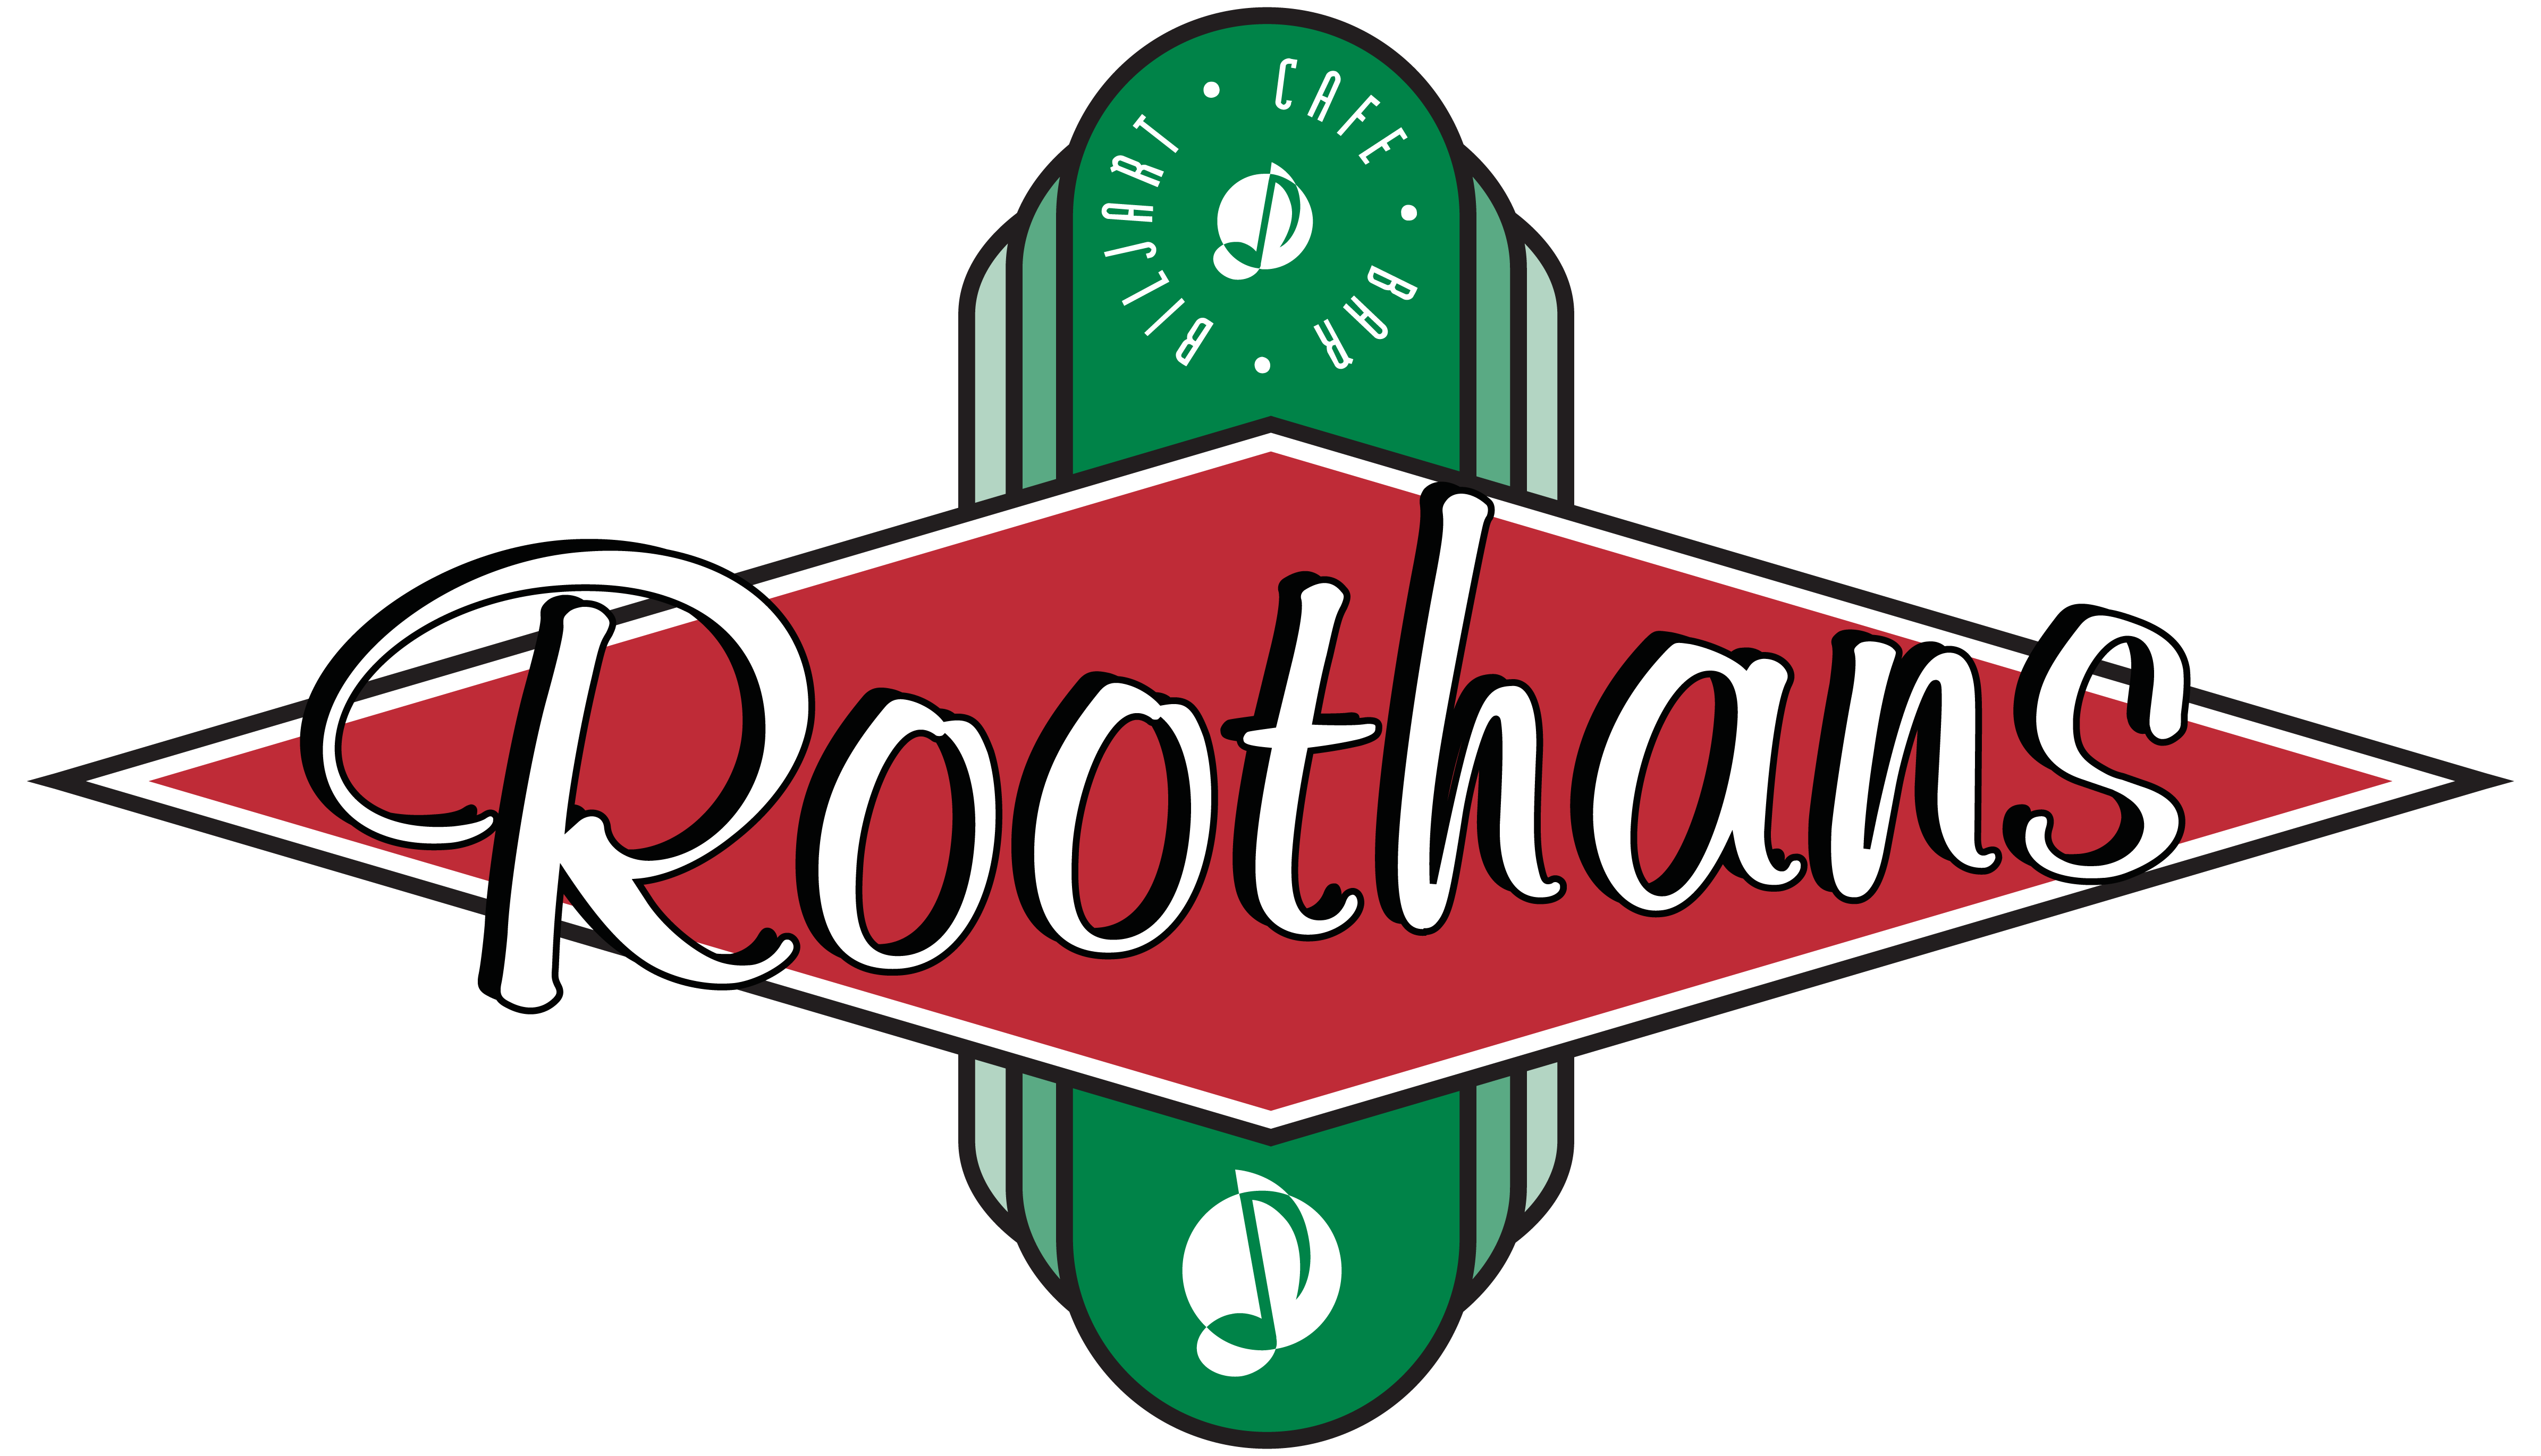 roothans logo.png